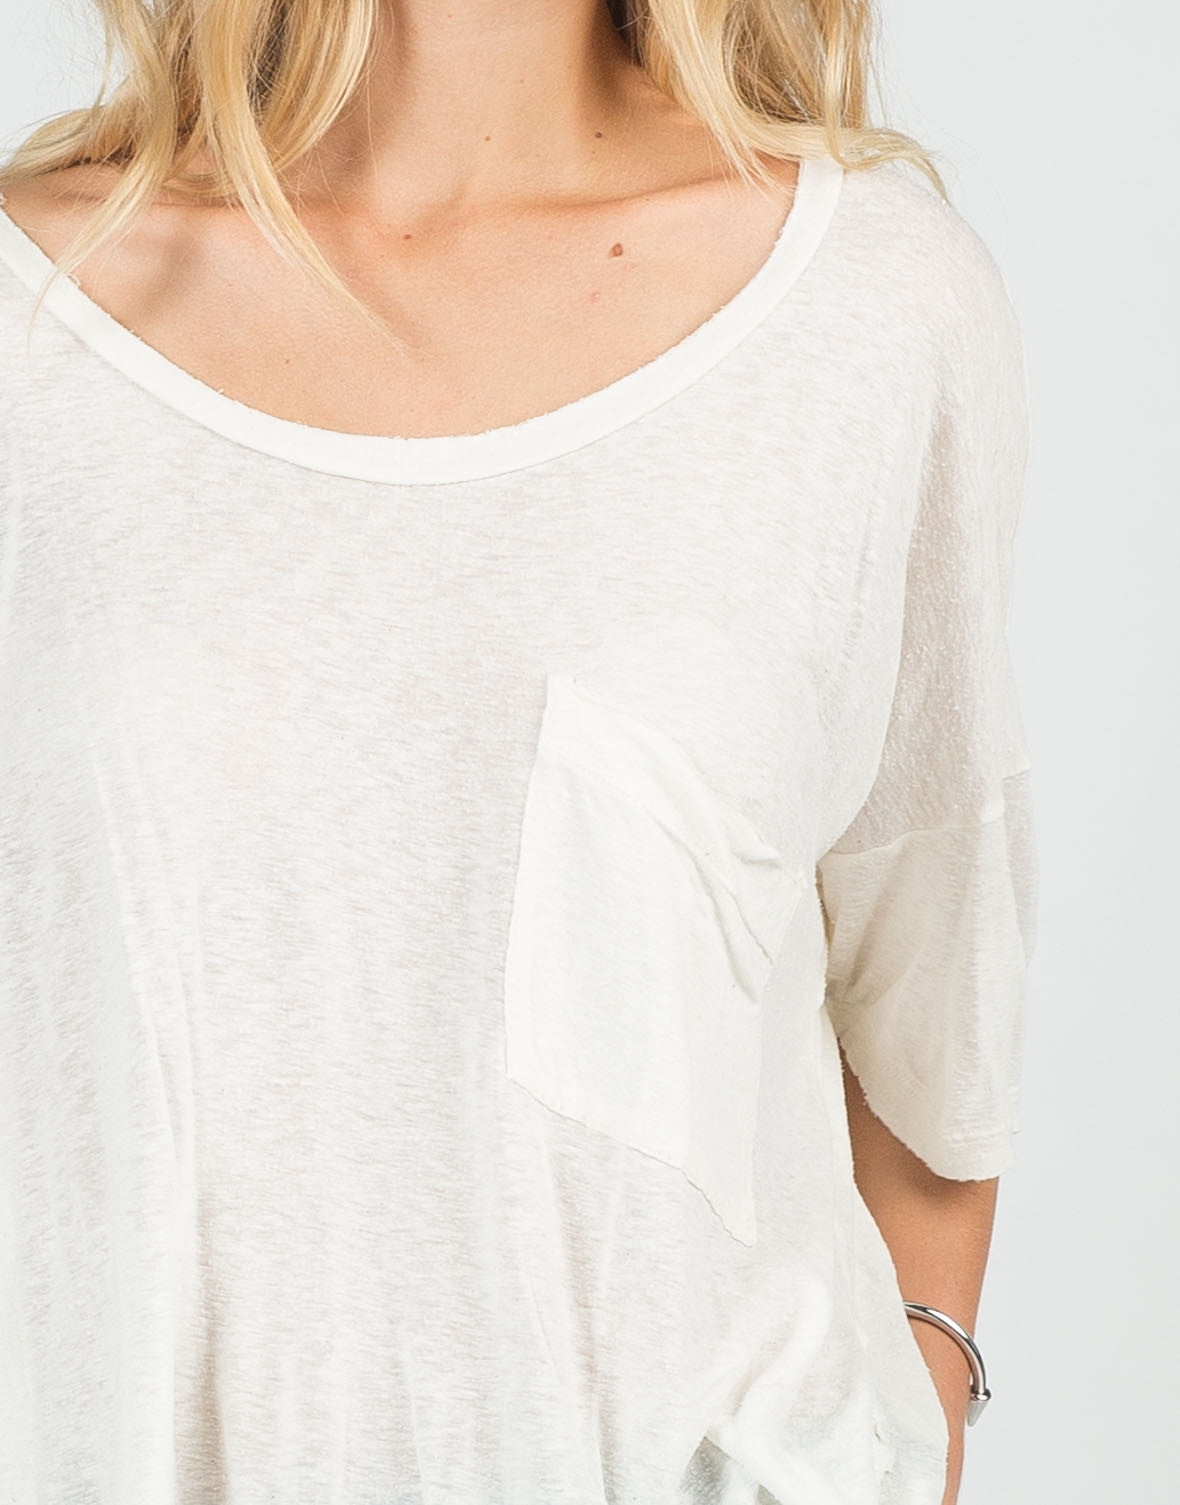 Detail of Oversized Vintage Dolman Tee